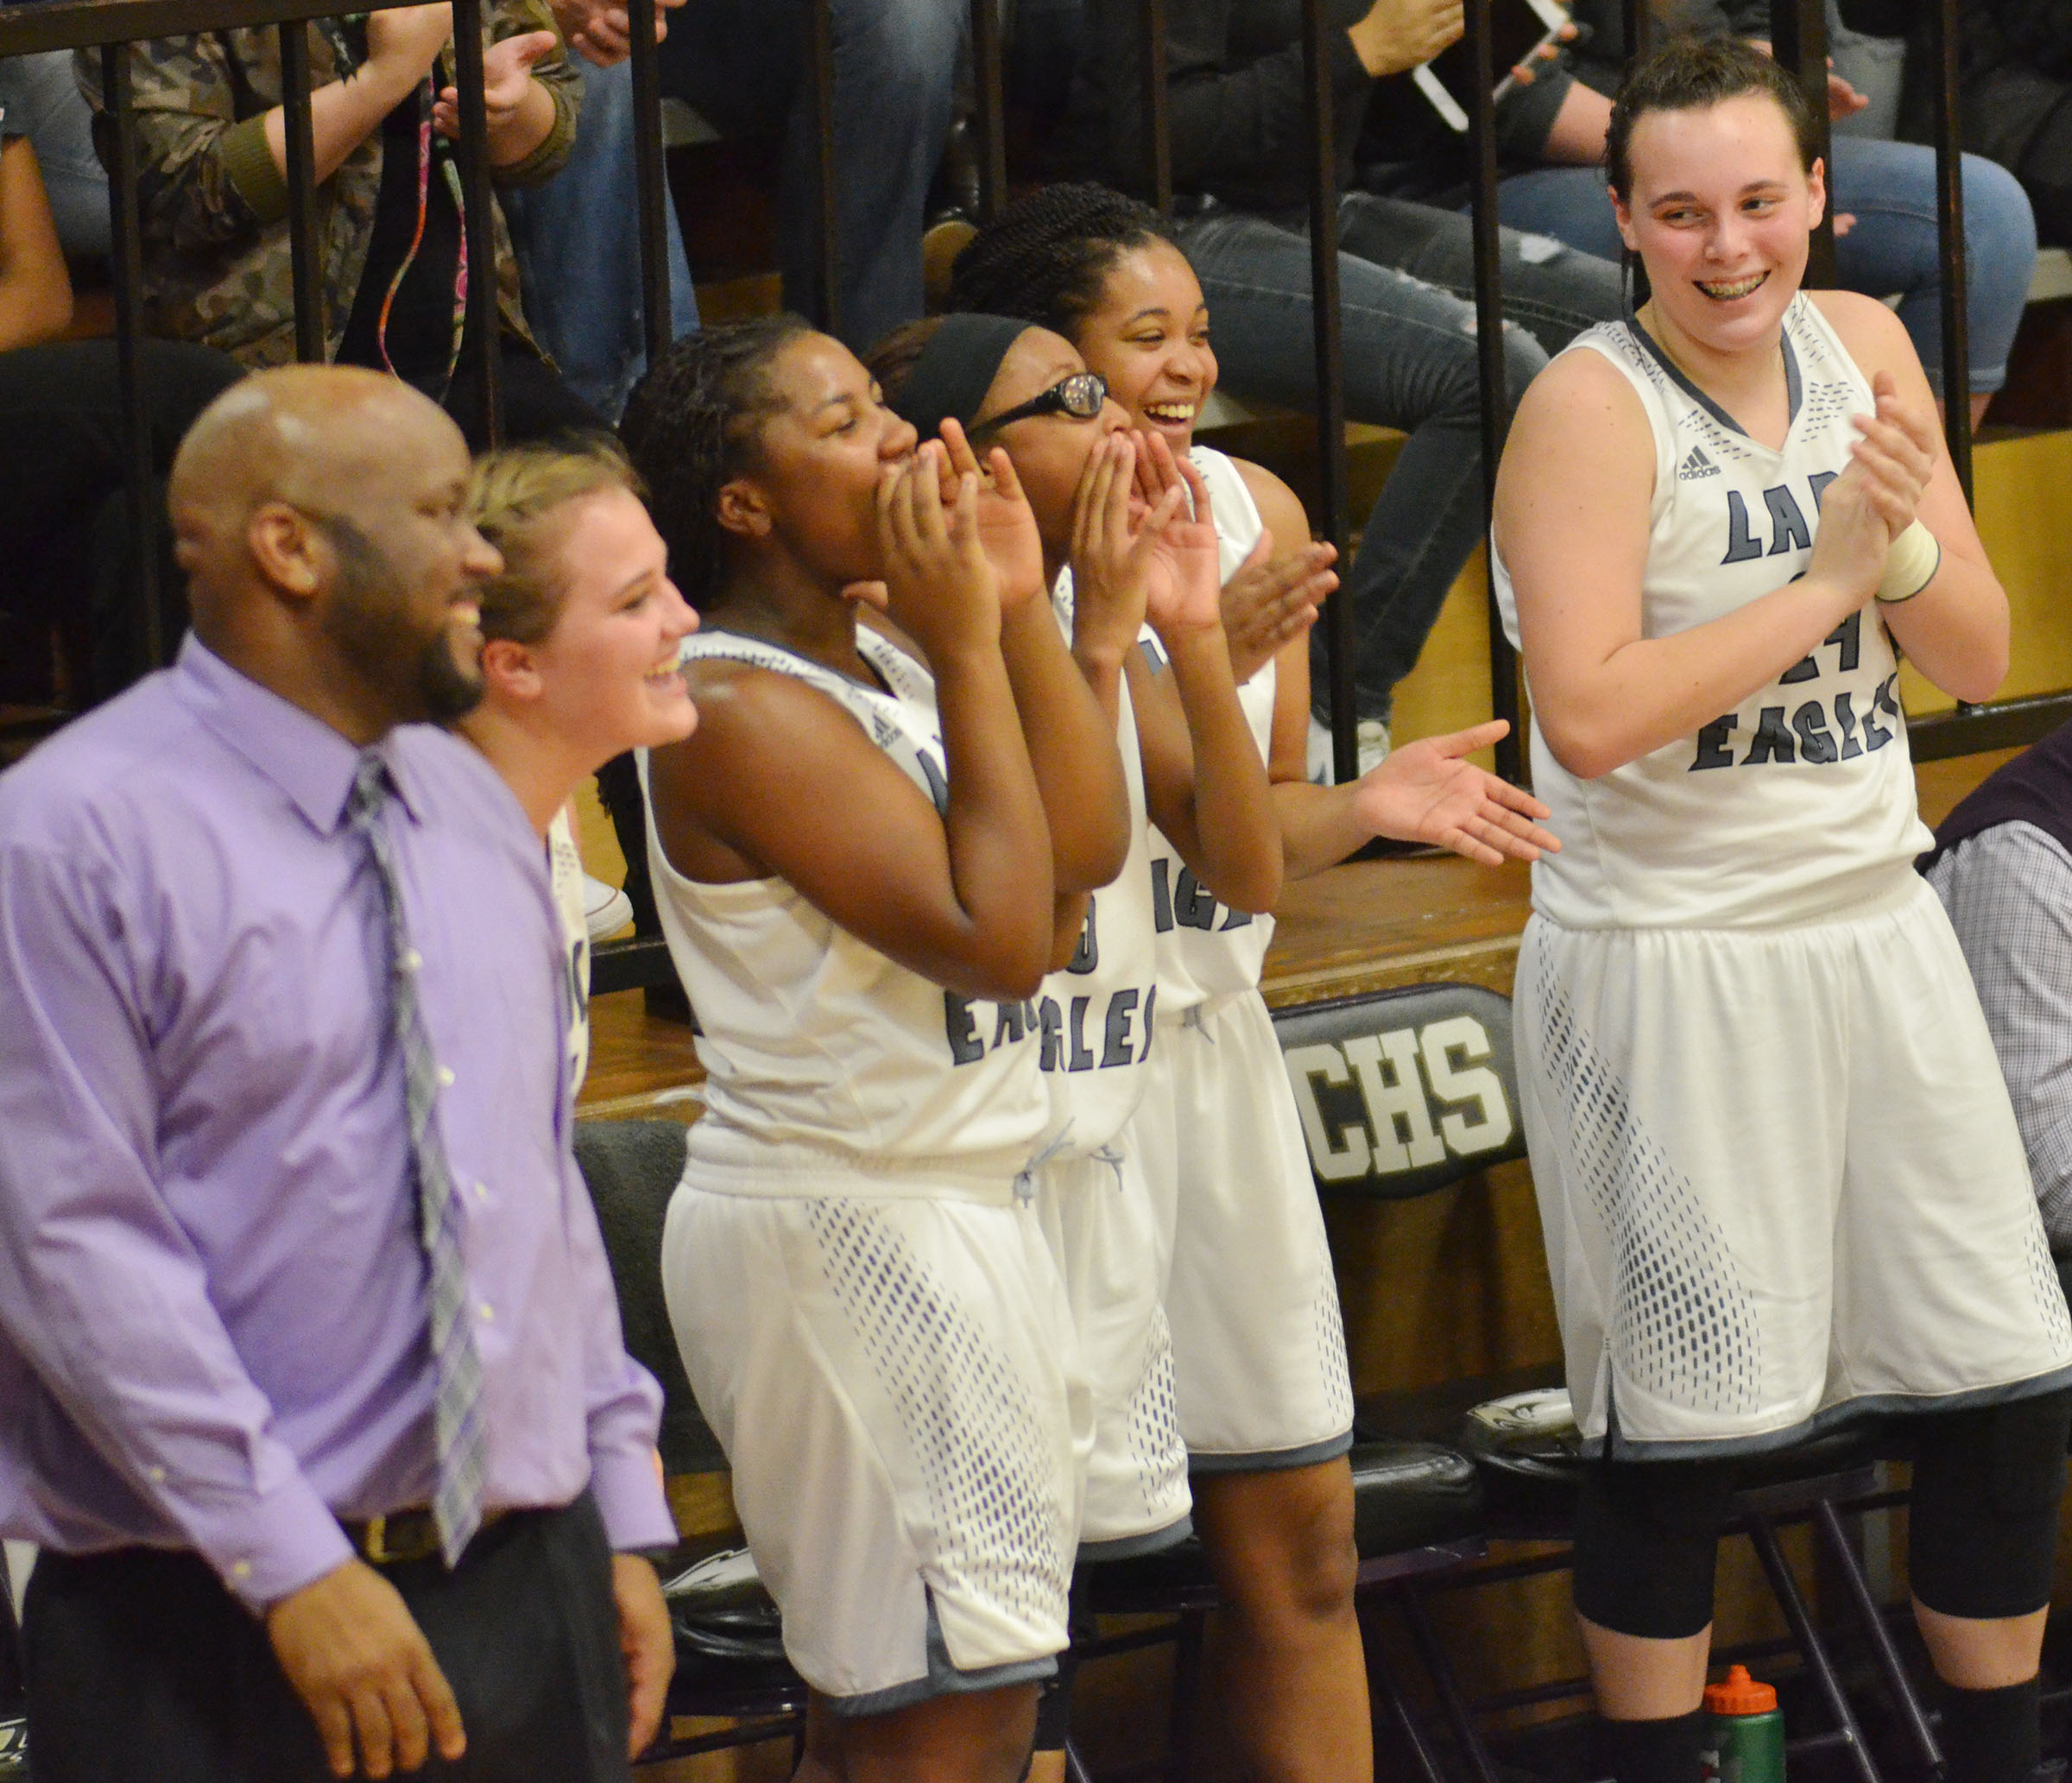 CHS girls' basketball players cheer as they defeat Taylor County.